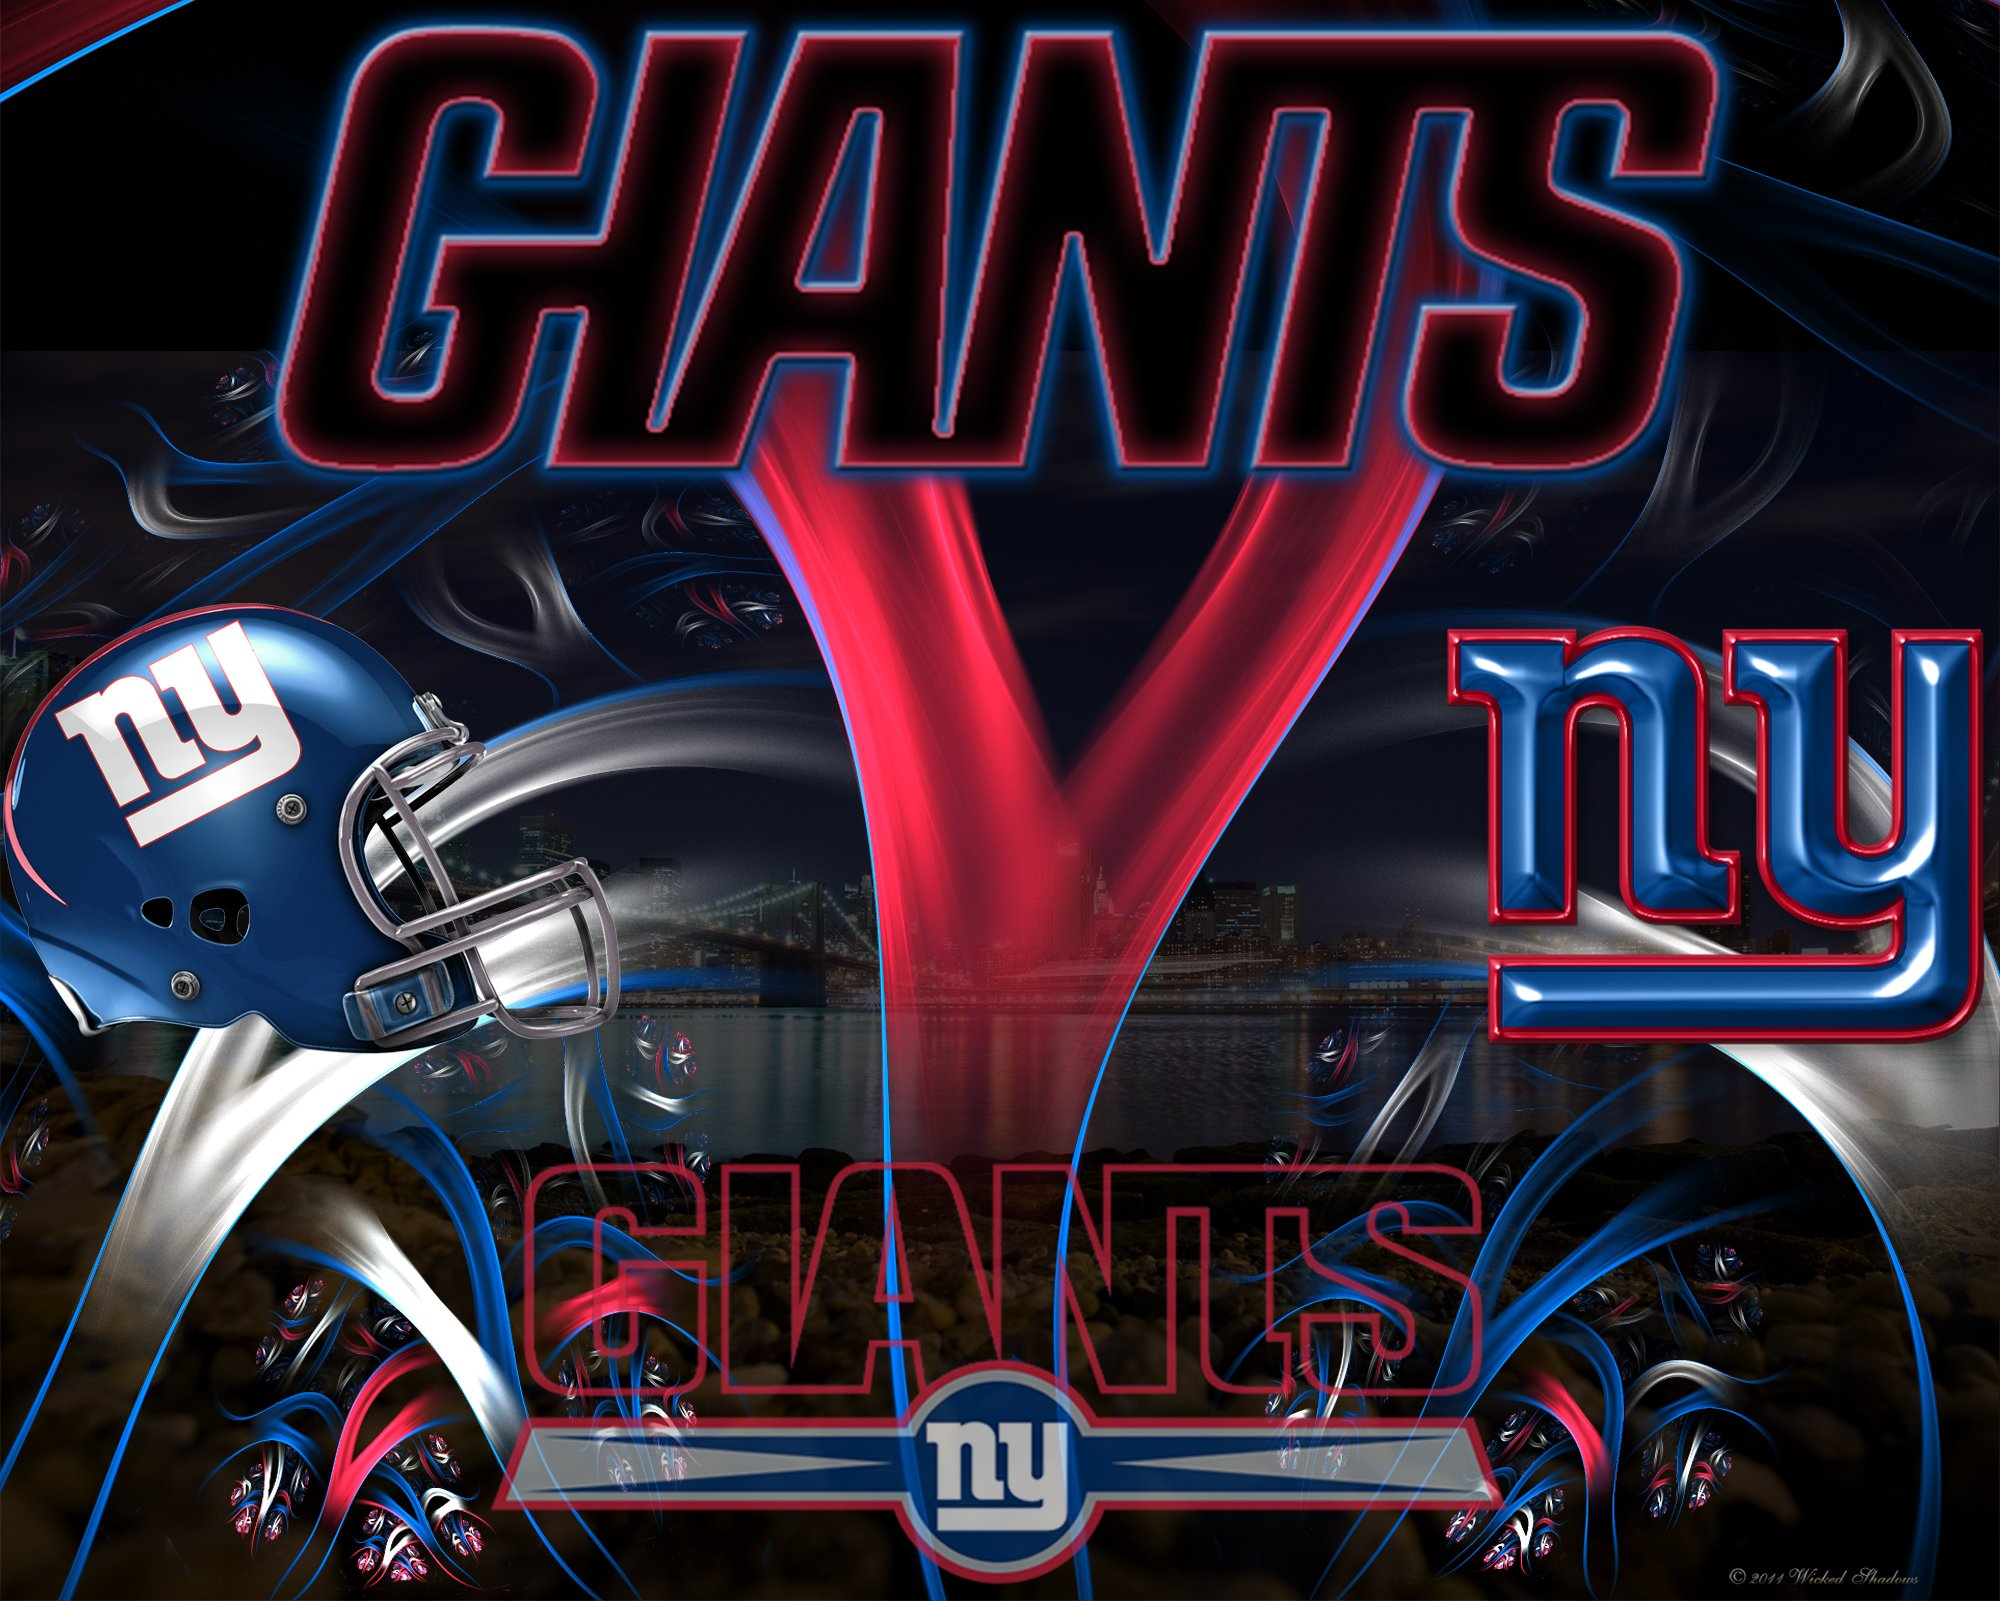 47 New York Giants Wallpaper Desktop On Wallpapersafari